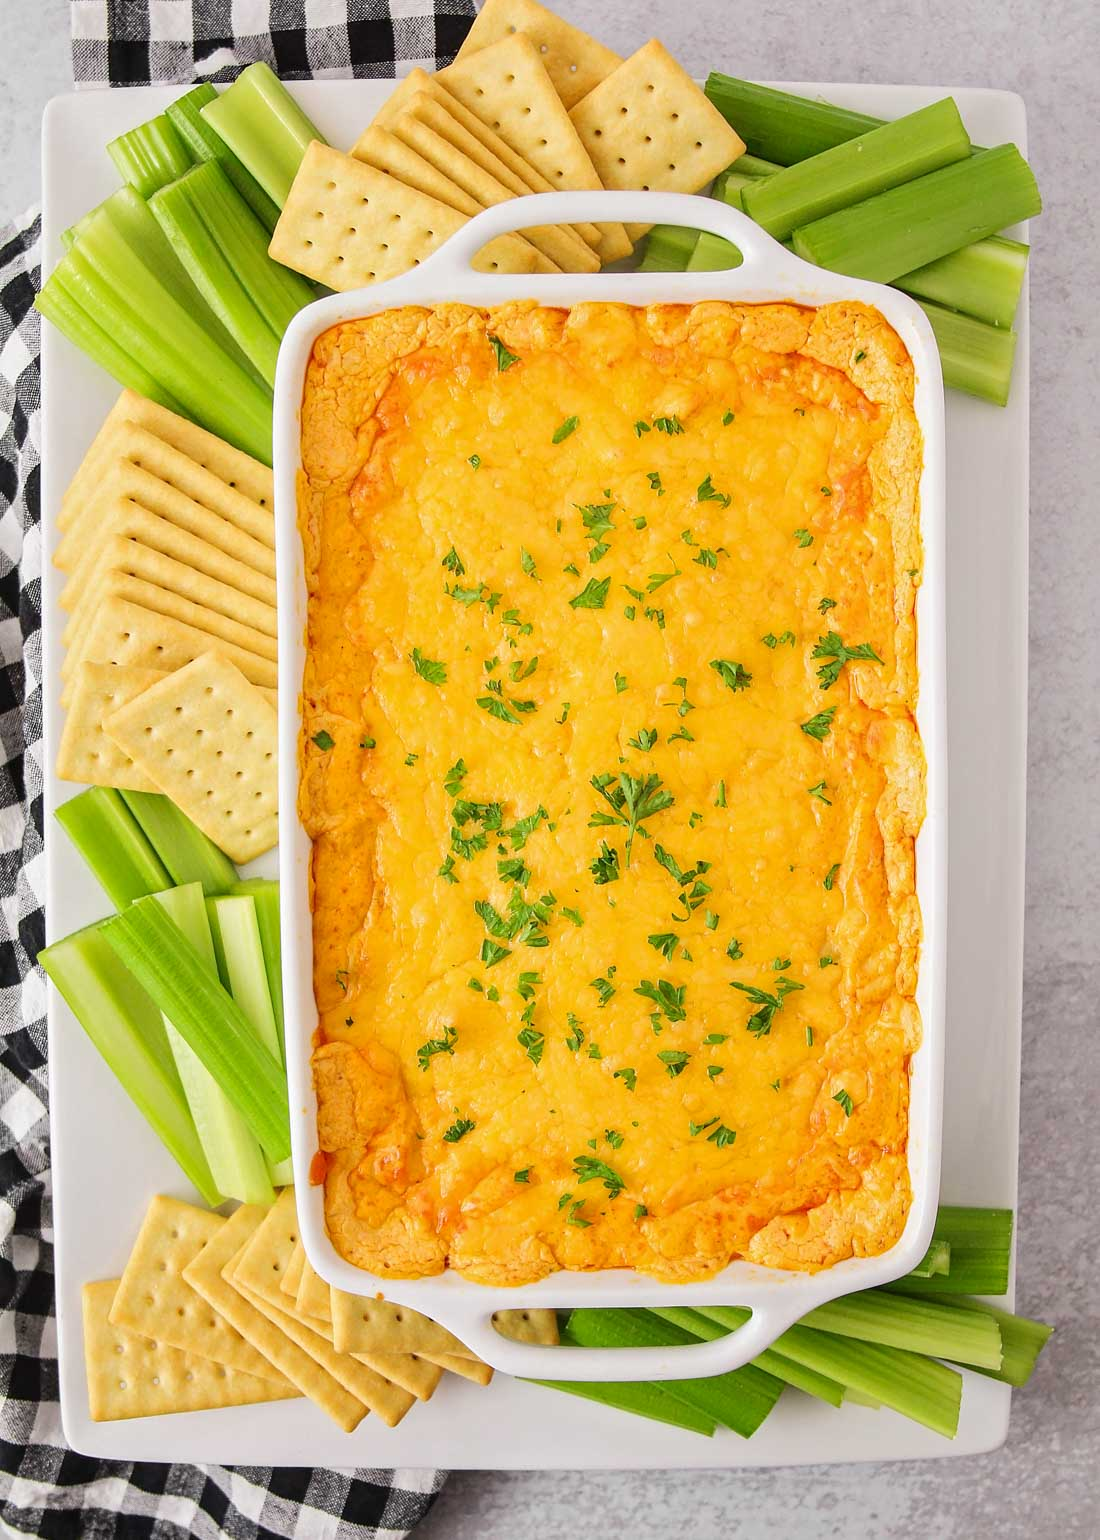 Easy buffalo chicken dip recipe on a platter with celery and crackers